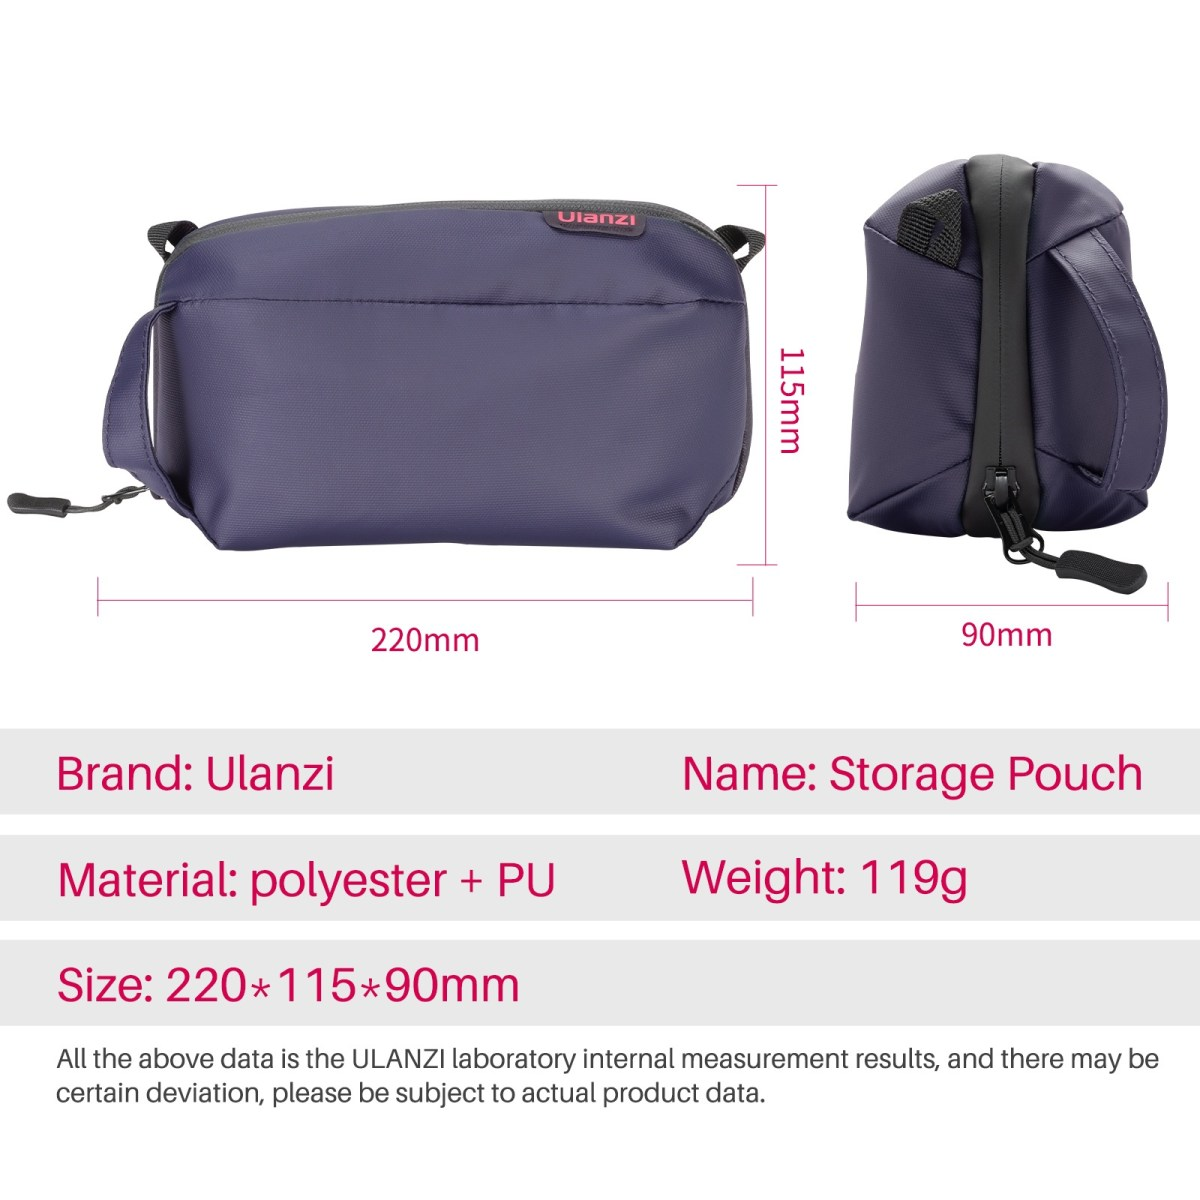 Ulanzi 2573 SP-01 Pouch for Camera Vlogging Gear india tiyana 9